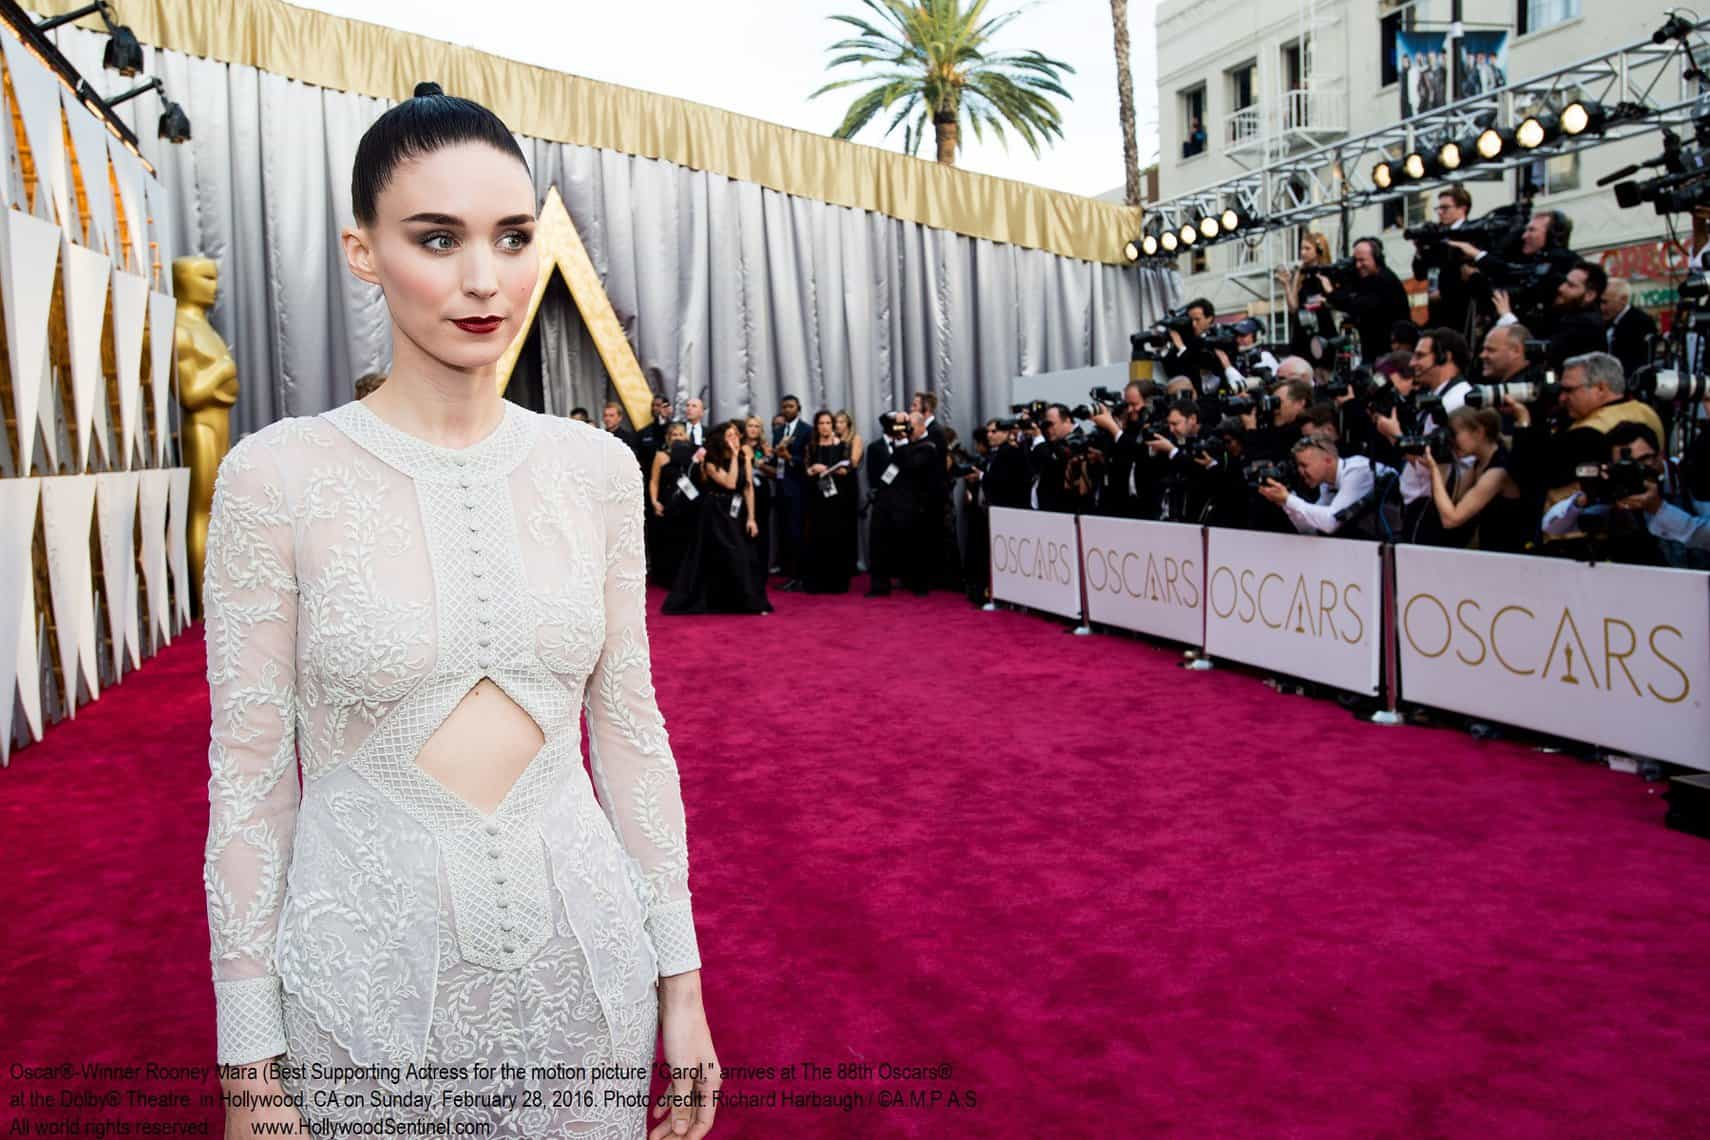 Oscar®-nominee, Rooney Mara, arrives at The 88th Oscars® at the Dolby® Theatre in Hollywood, CA on Sunday, February 28, 2016.